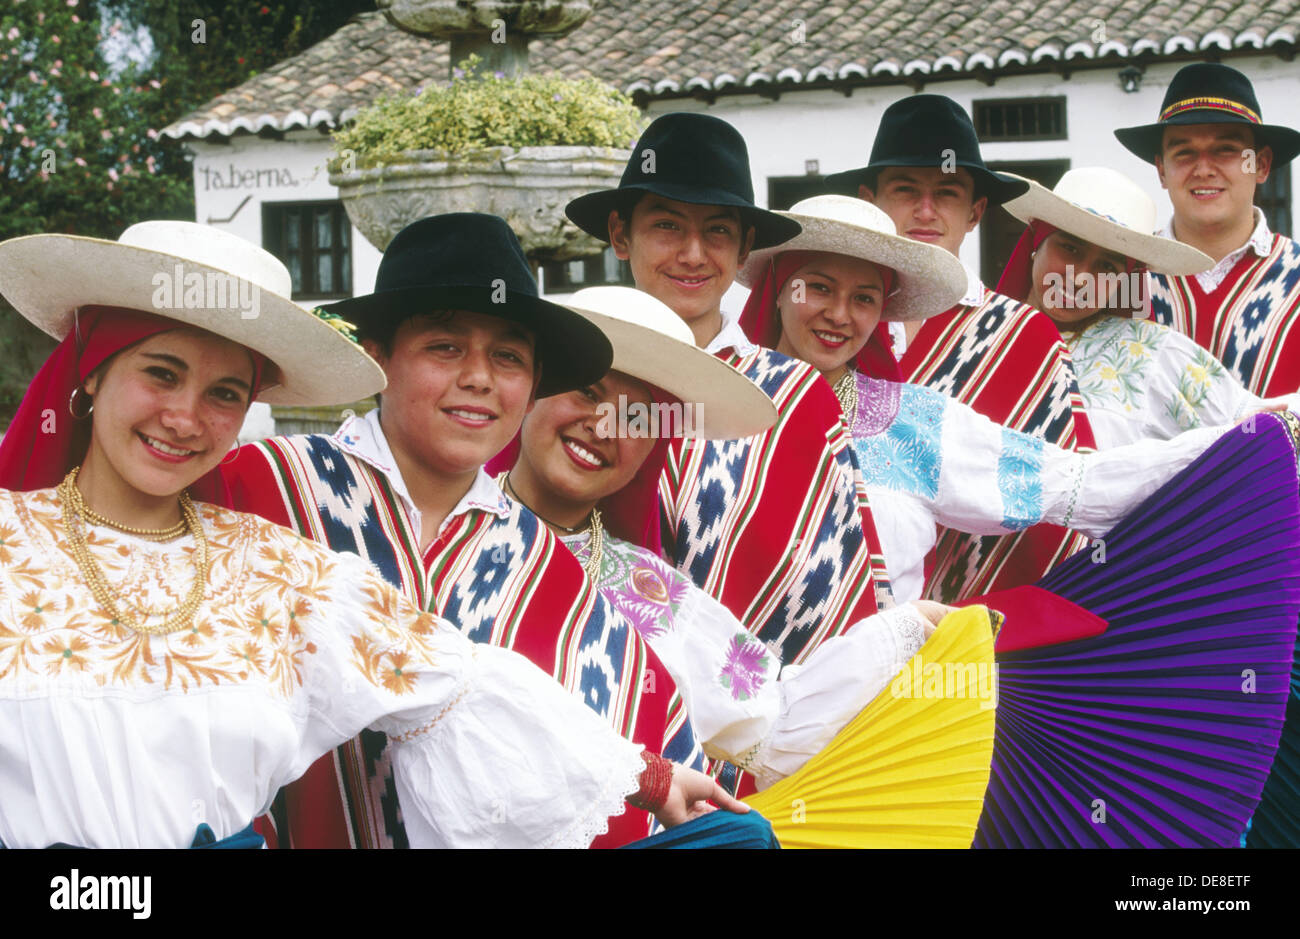 Folk group Nucanchi Llacta with traditional costumes. Zuleta. Imbabura province. Ecuador - Stock Image